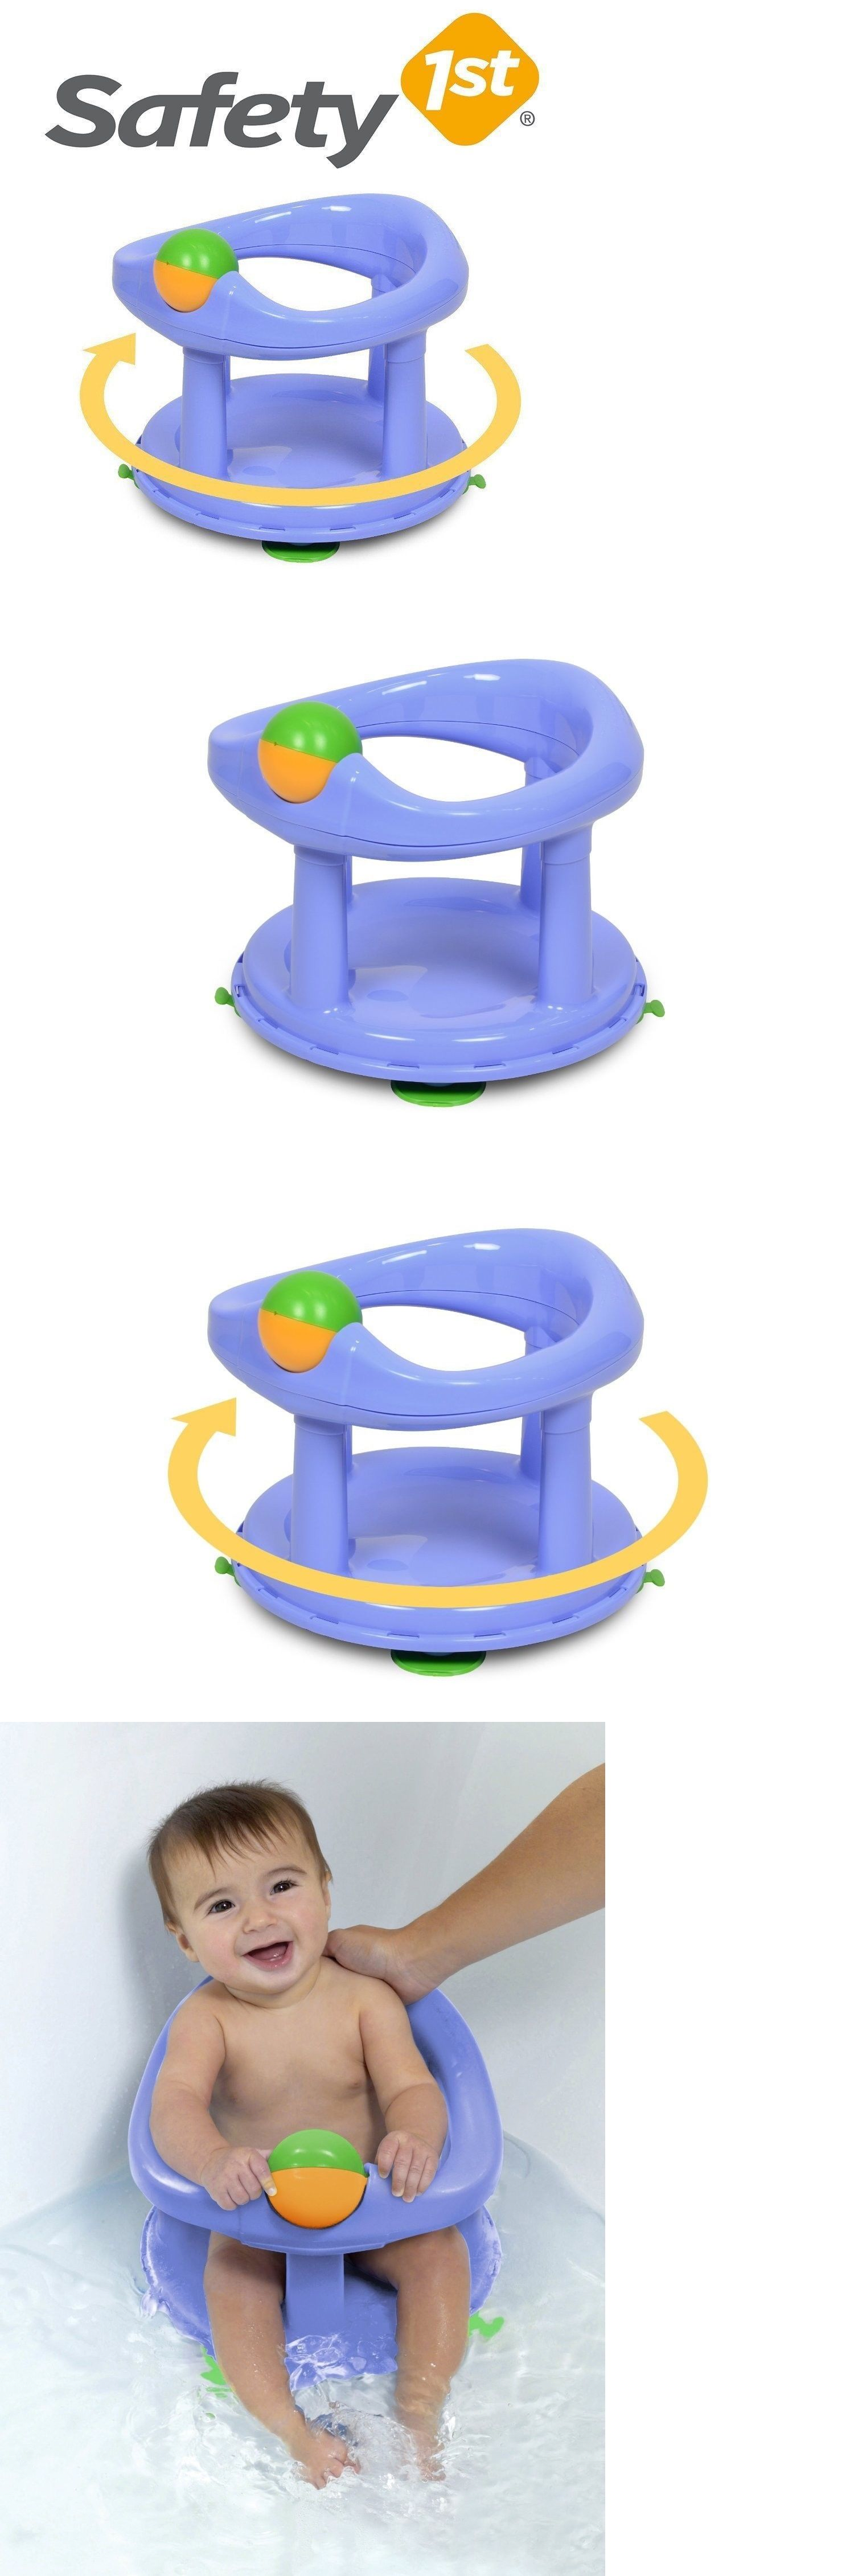 Baby Bath Tub Seat With Ring Toy Infant Newborn Chair Safety 1st ...